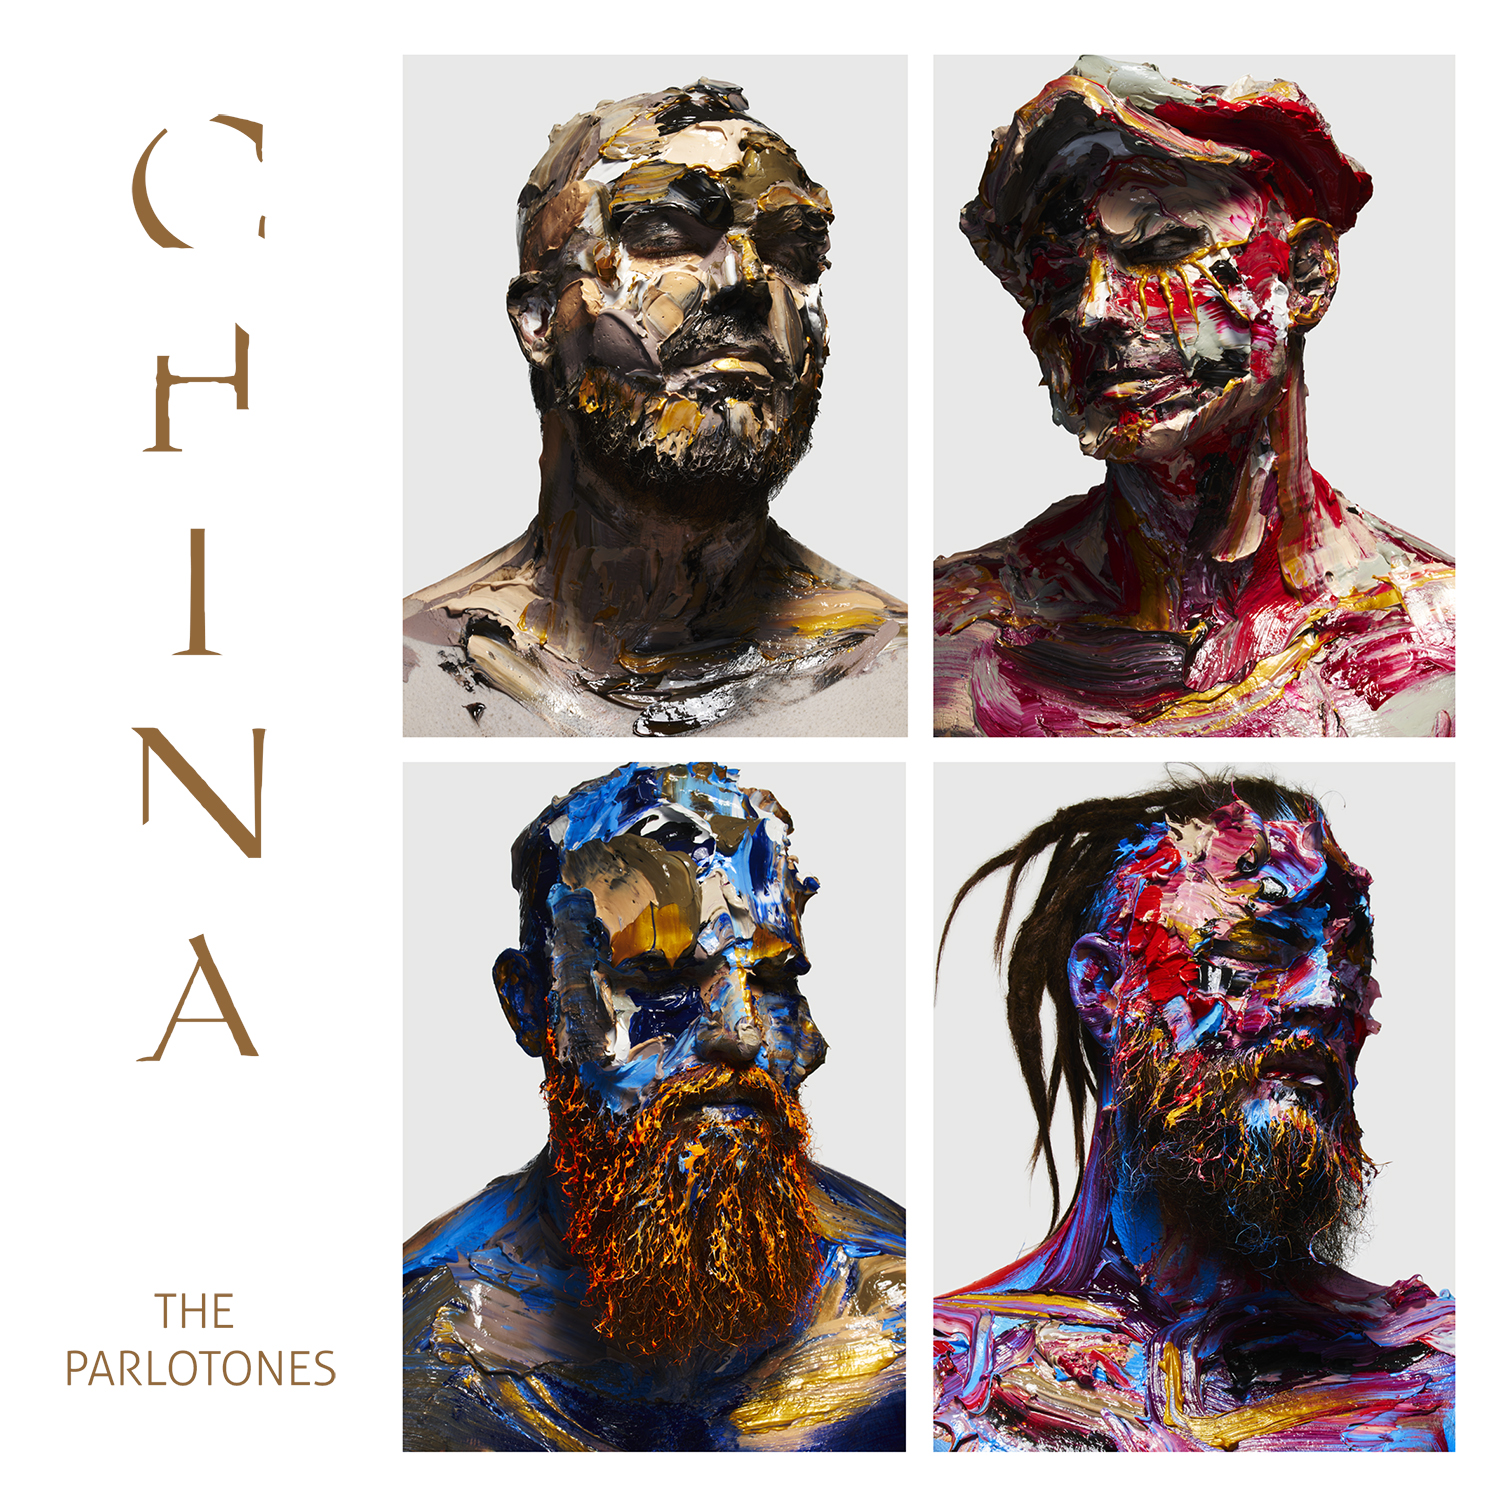 South African Indie Rock/Pop Band The Parlotones Release New Album, 'China'